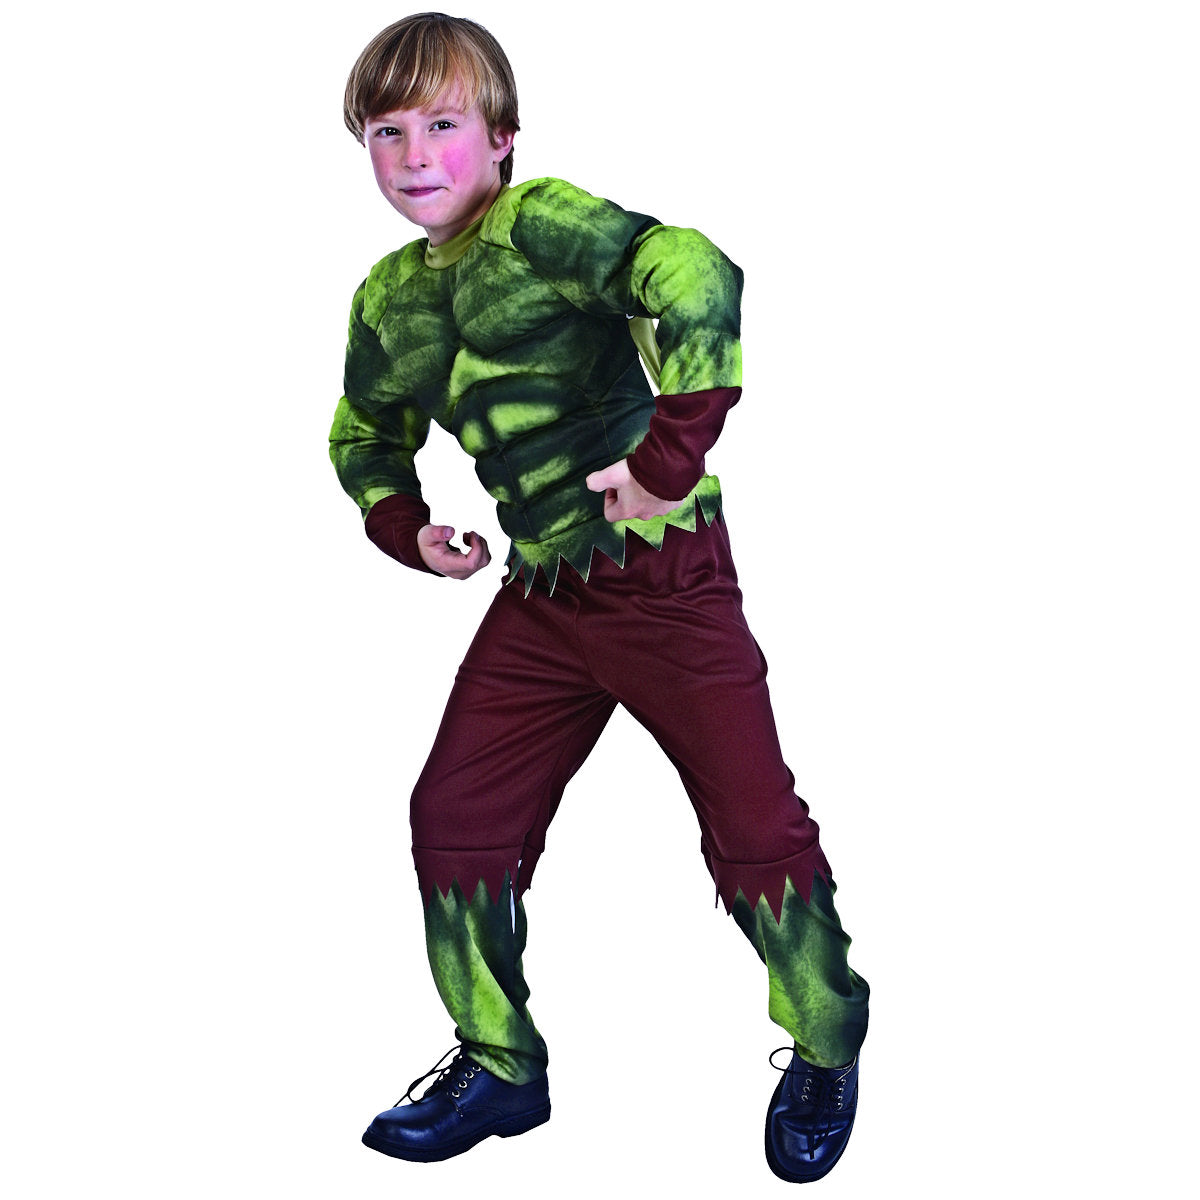 The Hulk Padded Muscle Jumpsuit  Boys Child Costume Fancy Dress